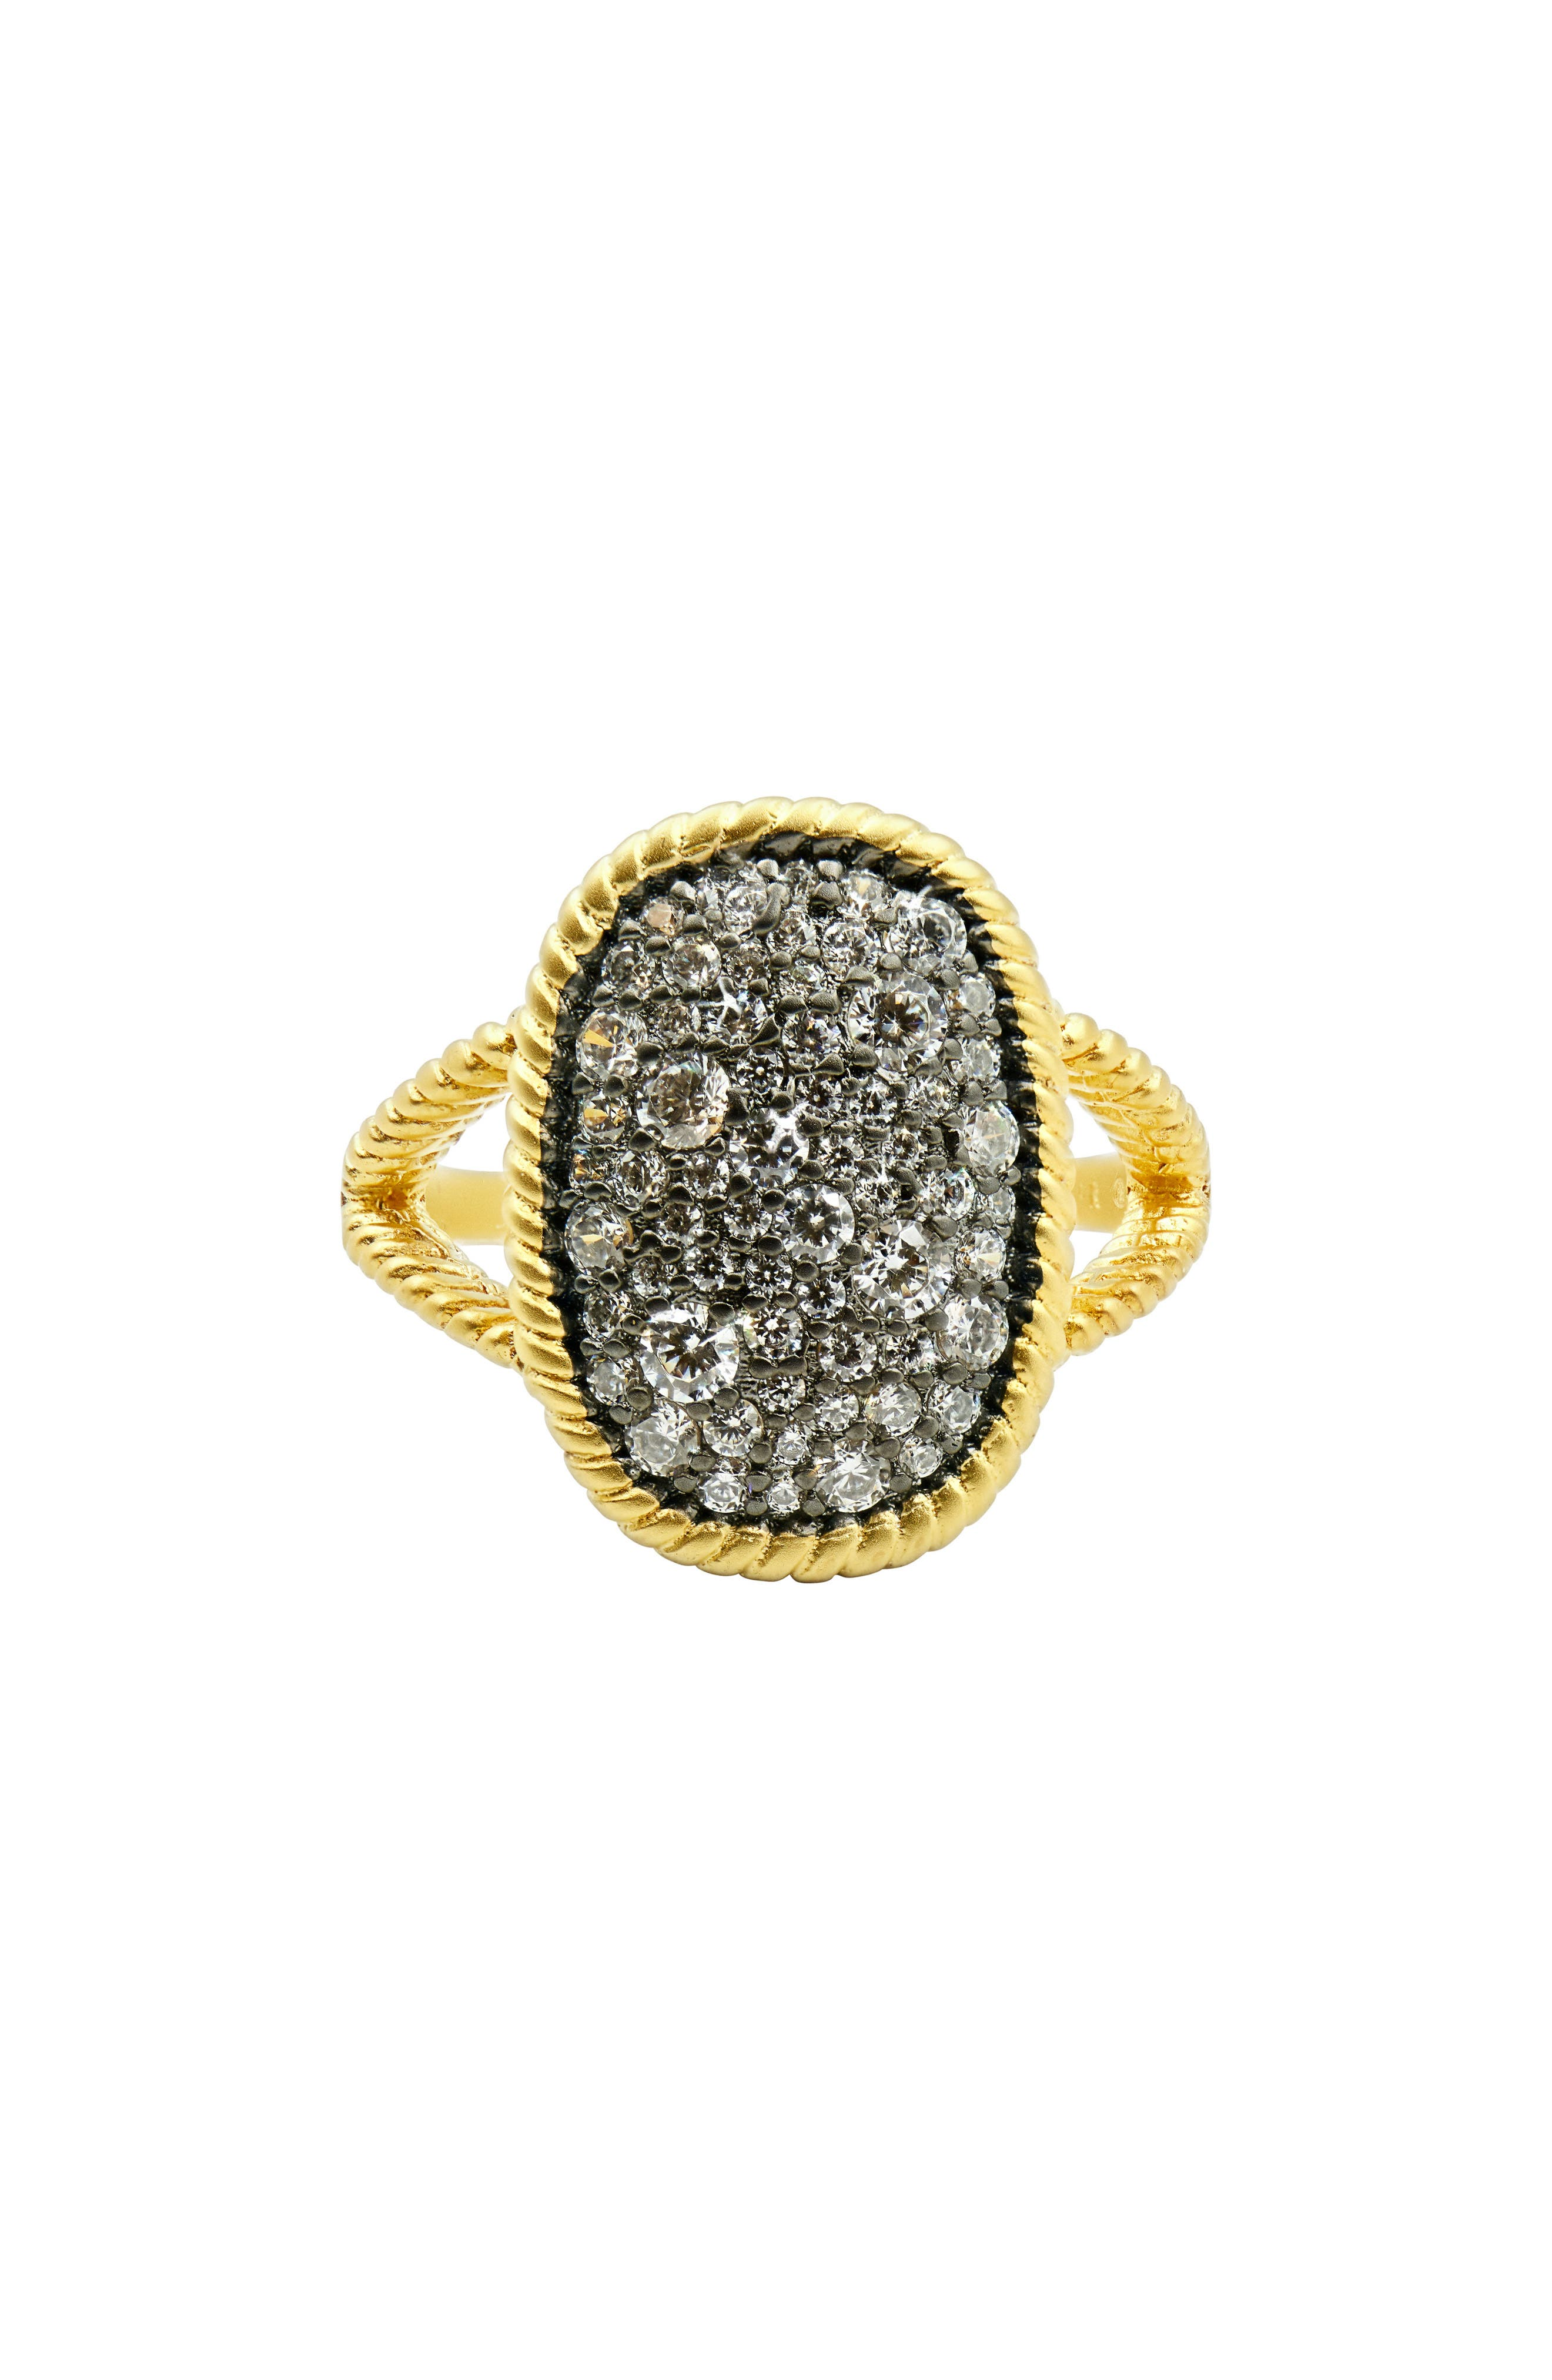 FREIDA ROTHMAN Gilded Cable Large Pavé Cocktail Ring